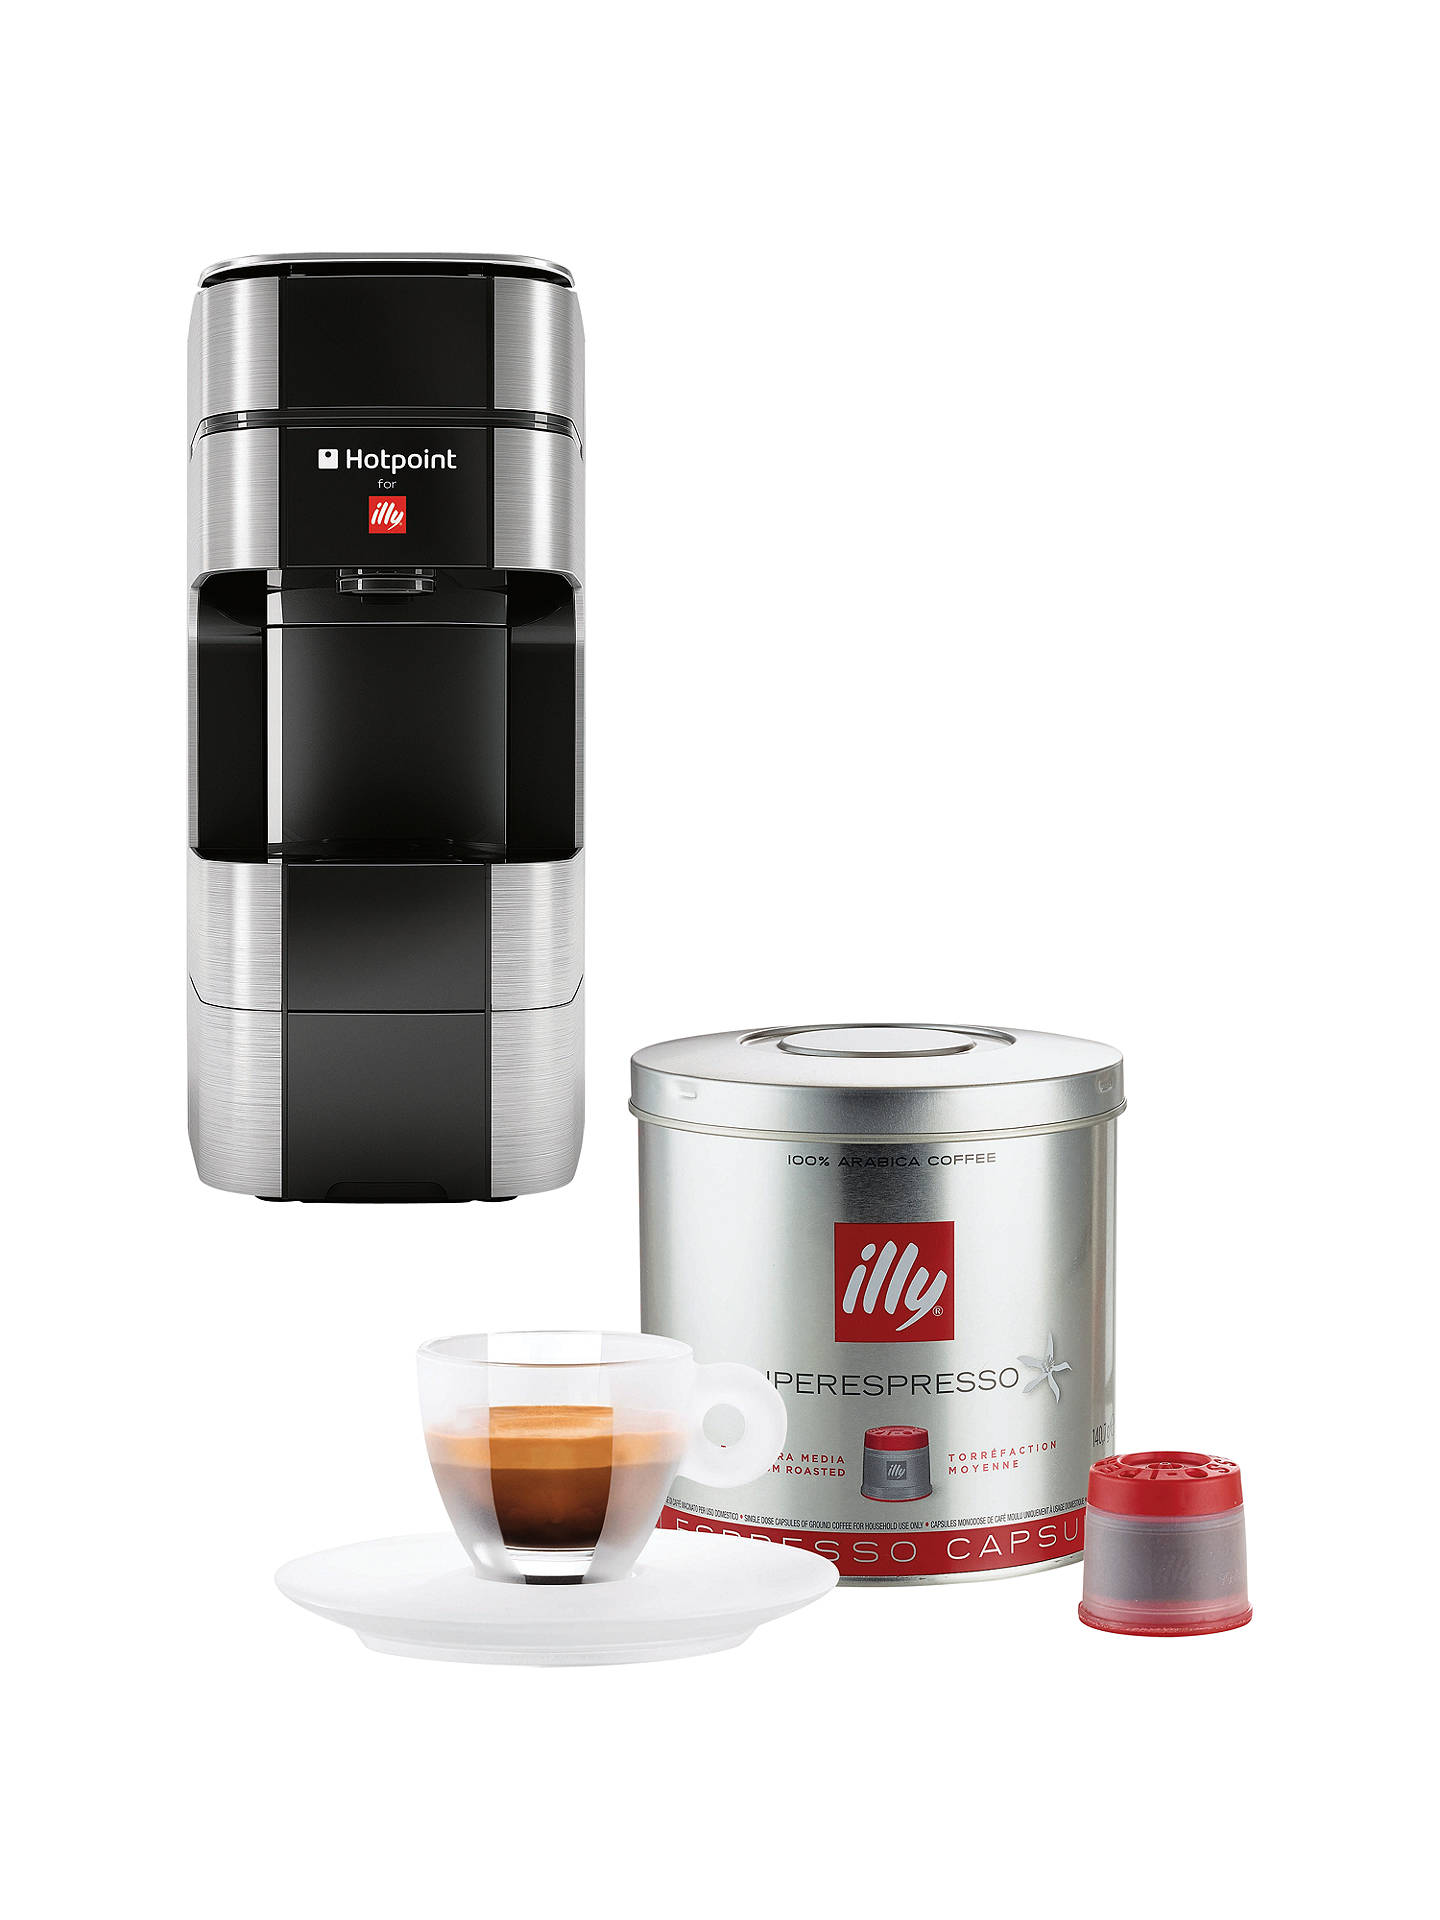 Hotpoint For Illy Espresso Coffee Machine At John Lewis